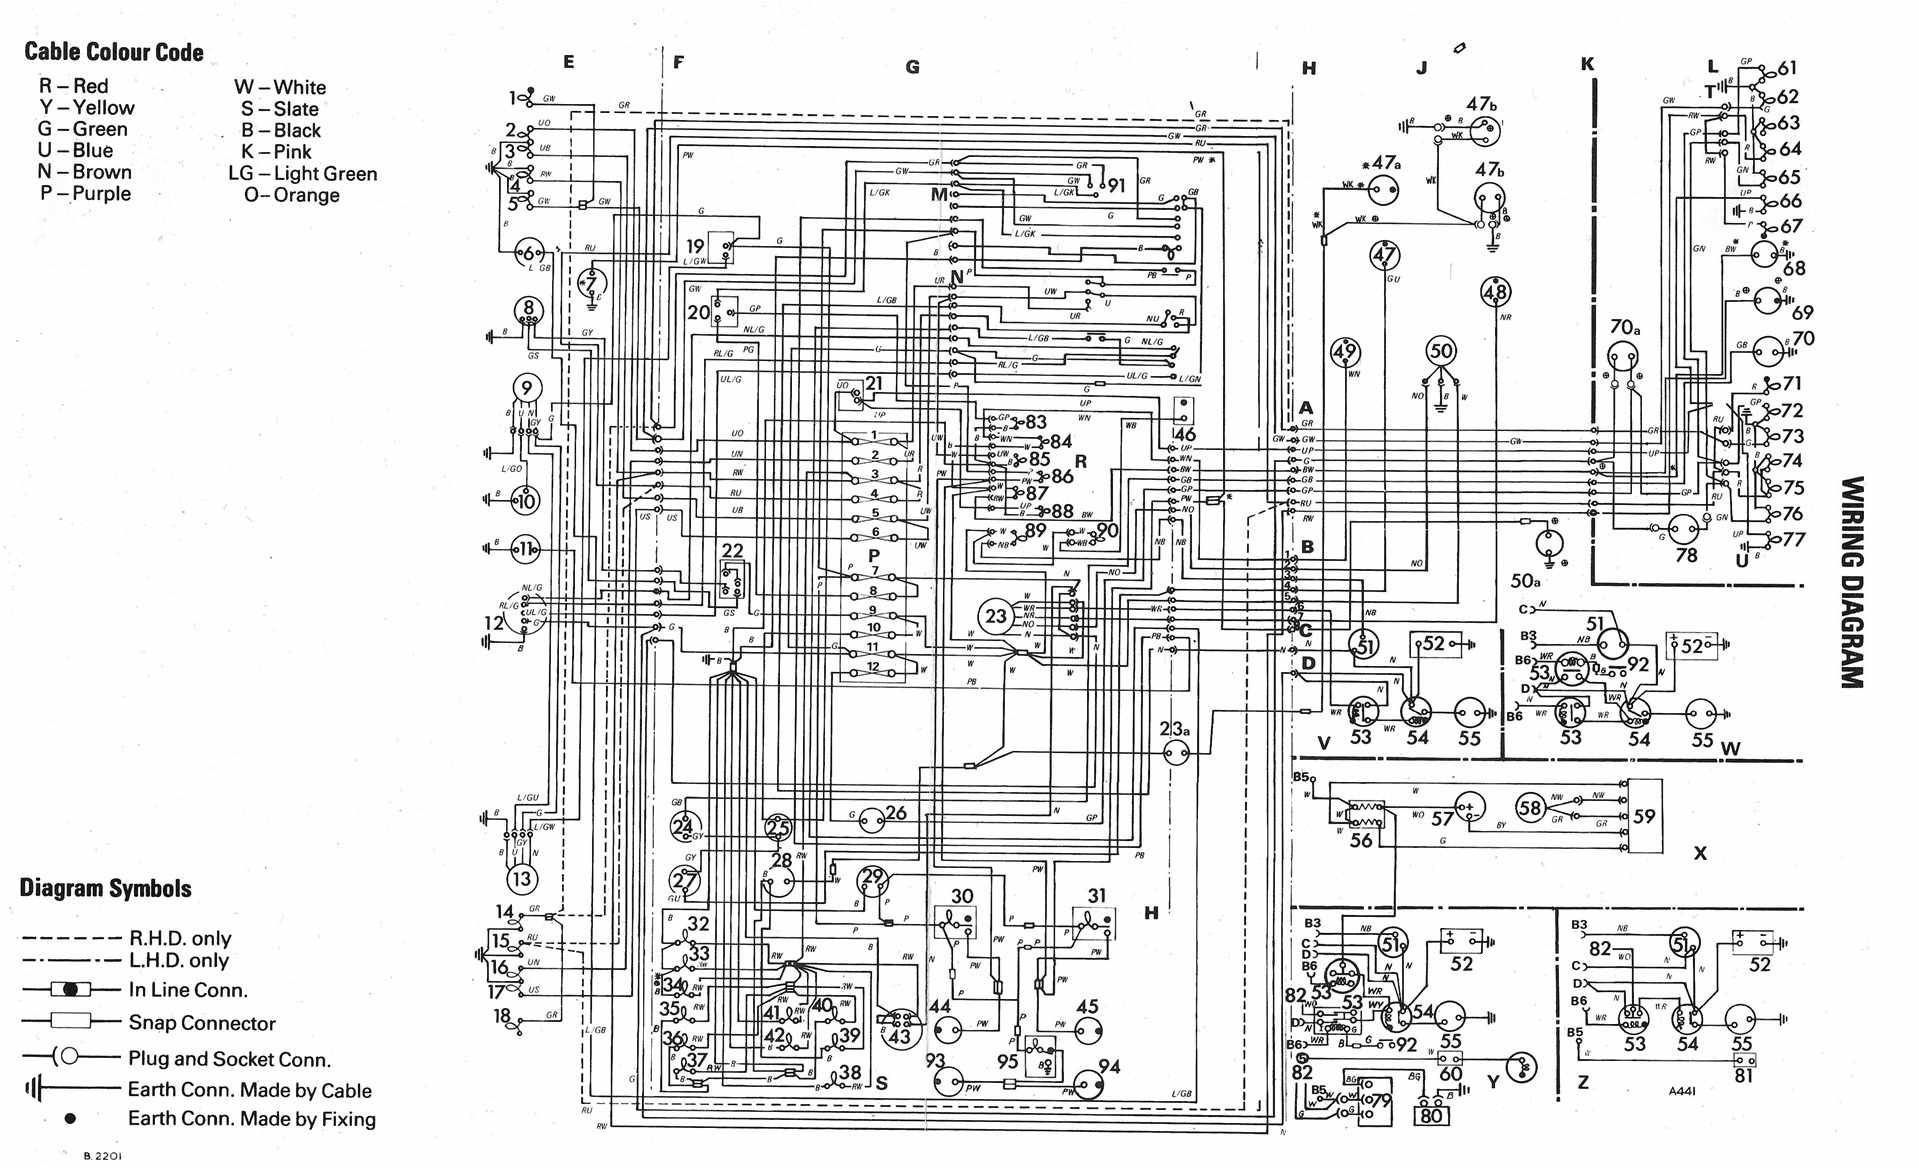 unique vw golf mk5 headlight wiring diagram #diagram #diagramsample  #diagramtemplate #wiringdiagram #diagramchart #worksheet … | vw up,  volkswagen golf mk1, vw golf  pinterest